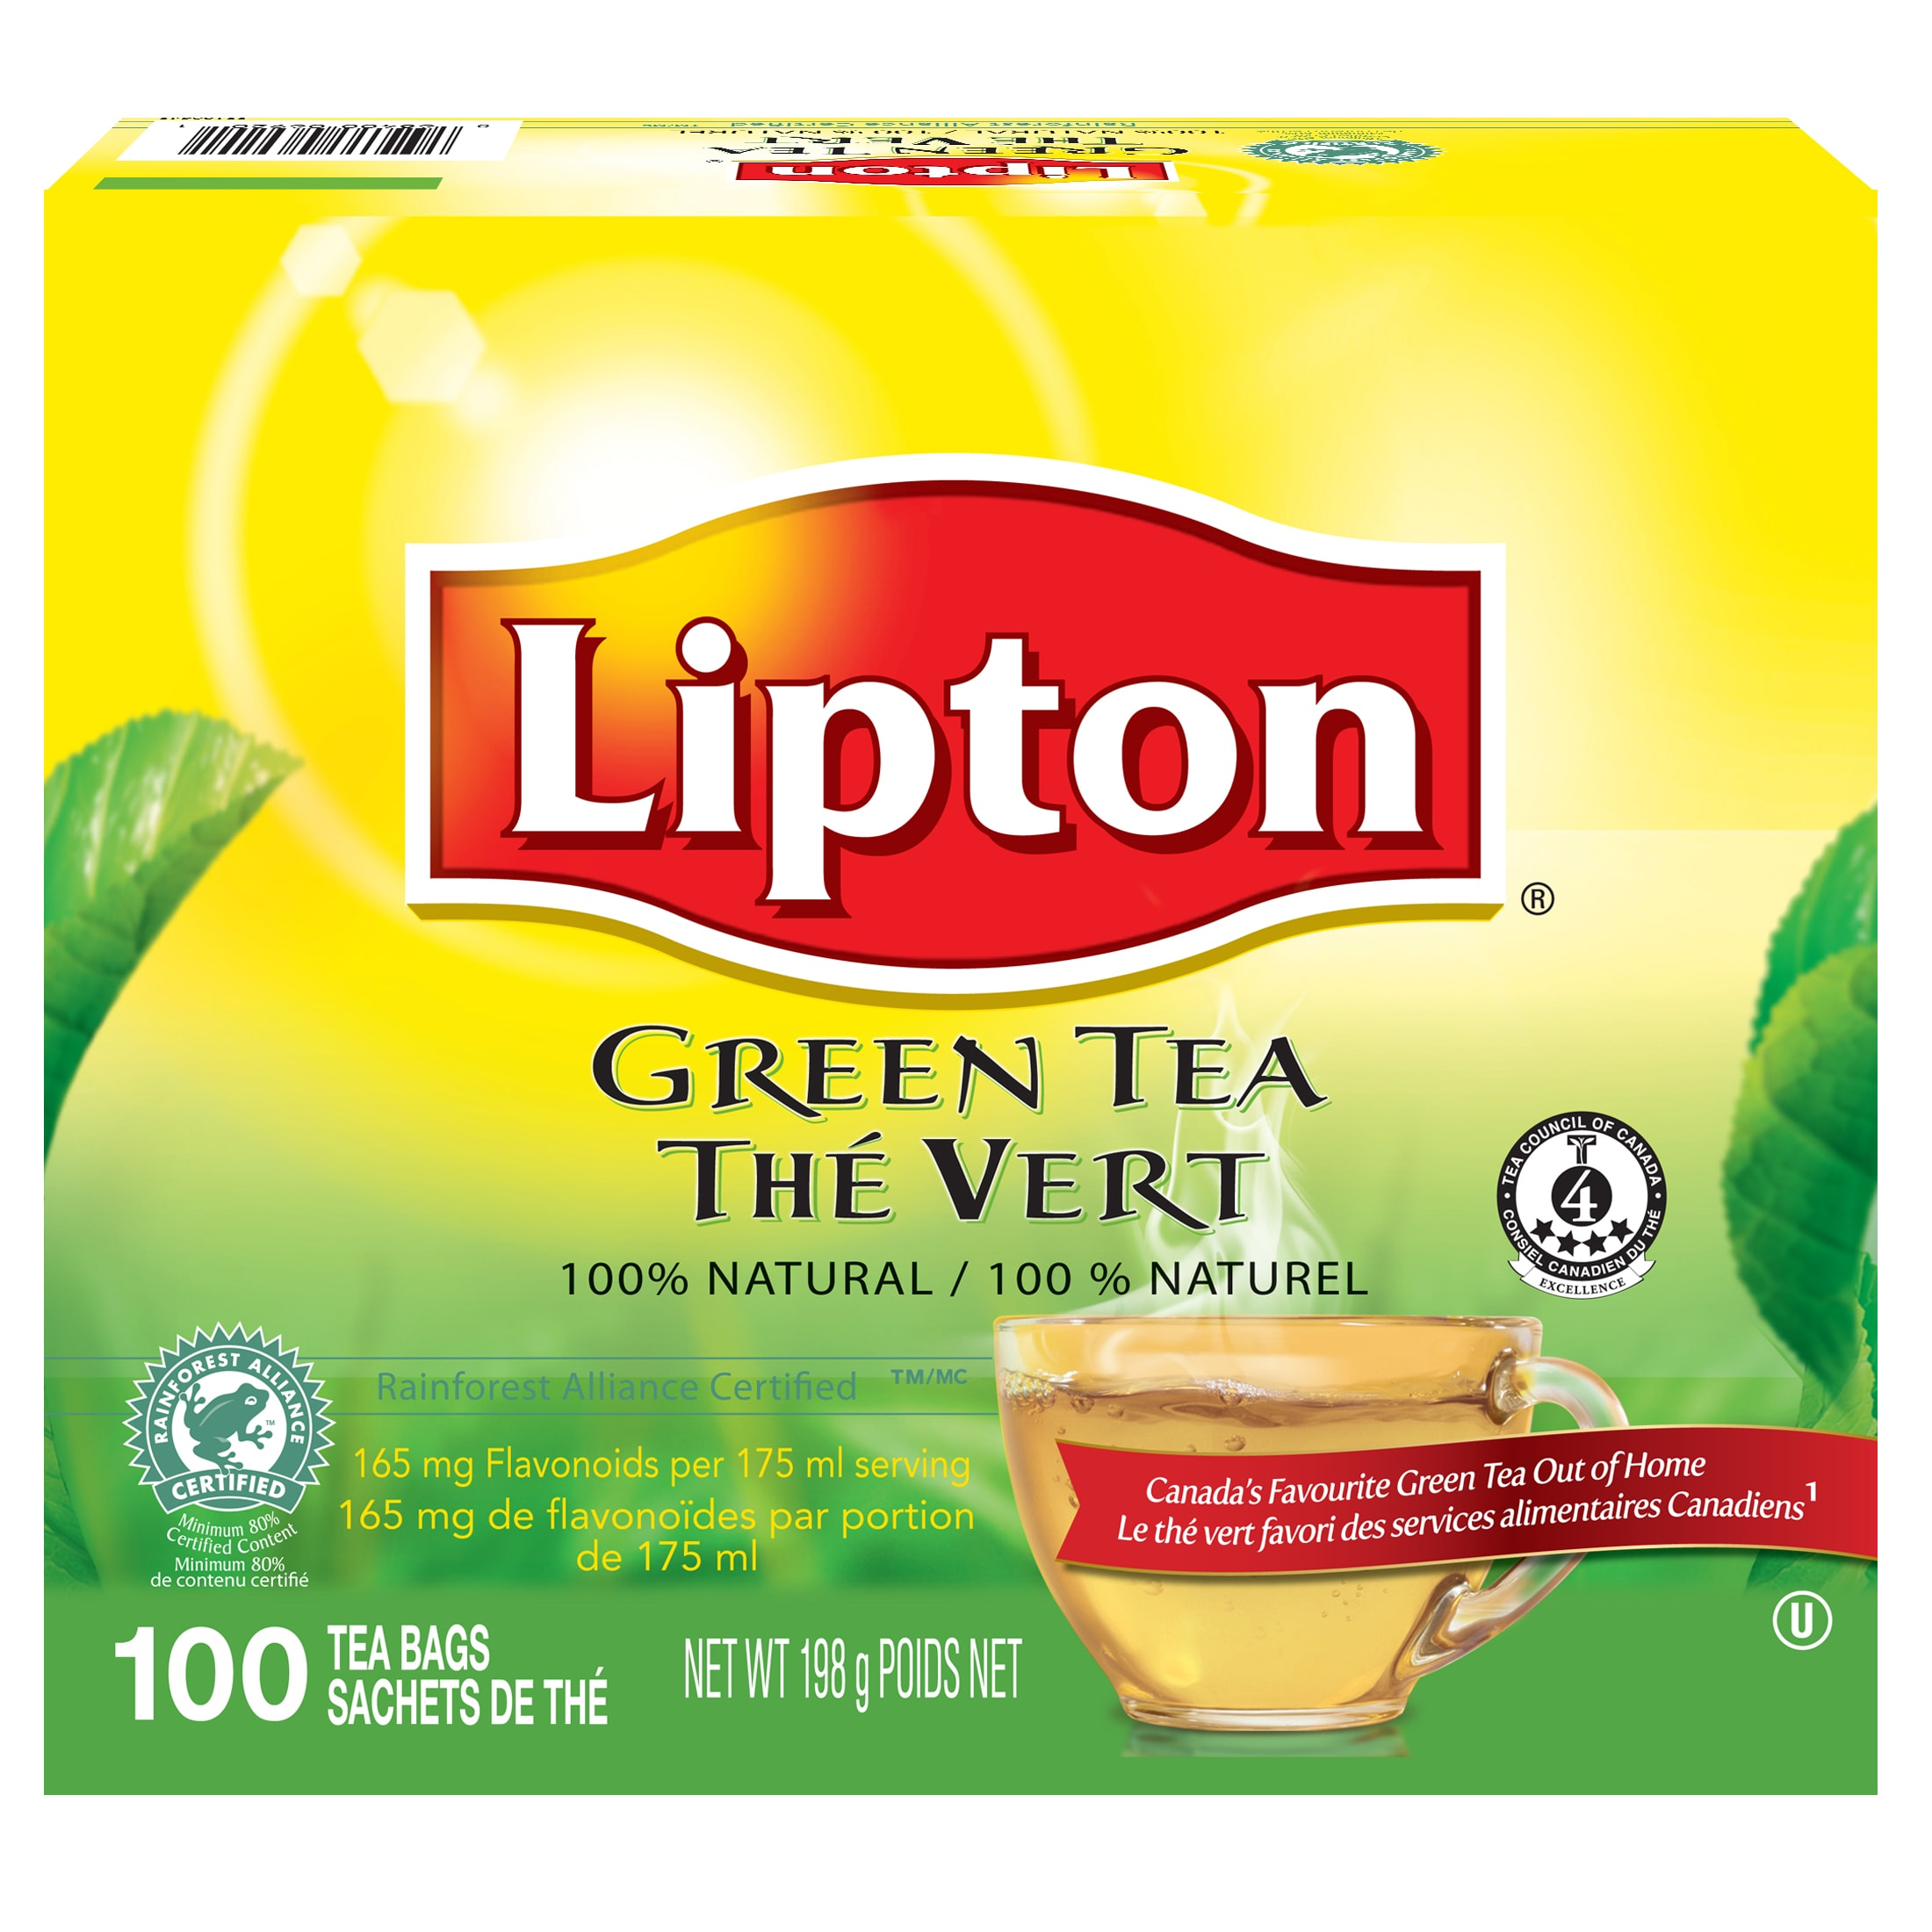 Lipton® Green Tea 5 x 100 bags - Lipton® Green Tea 5 x 100 bags suits every mood.